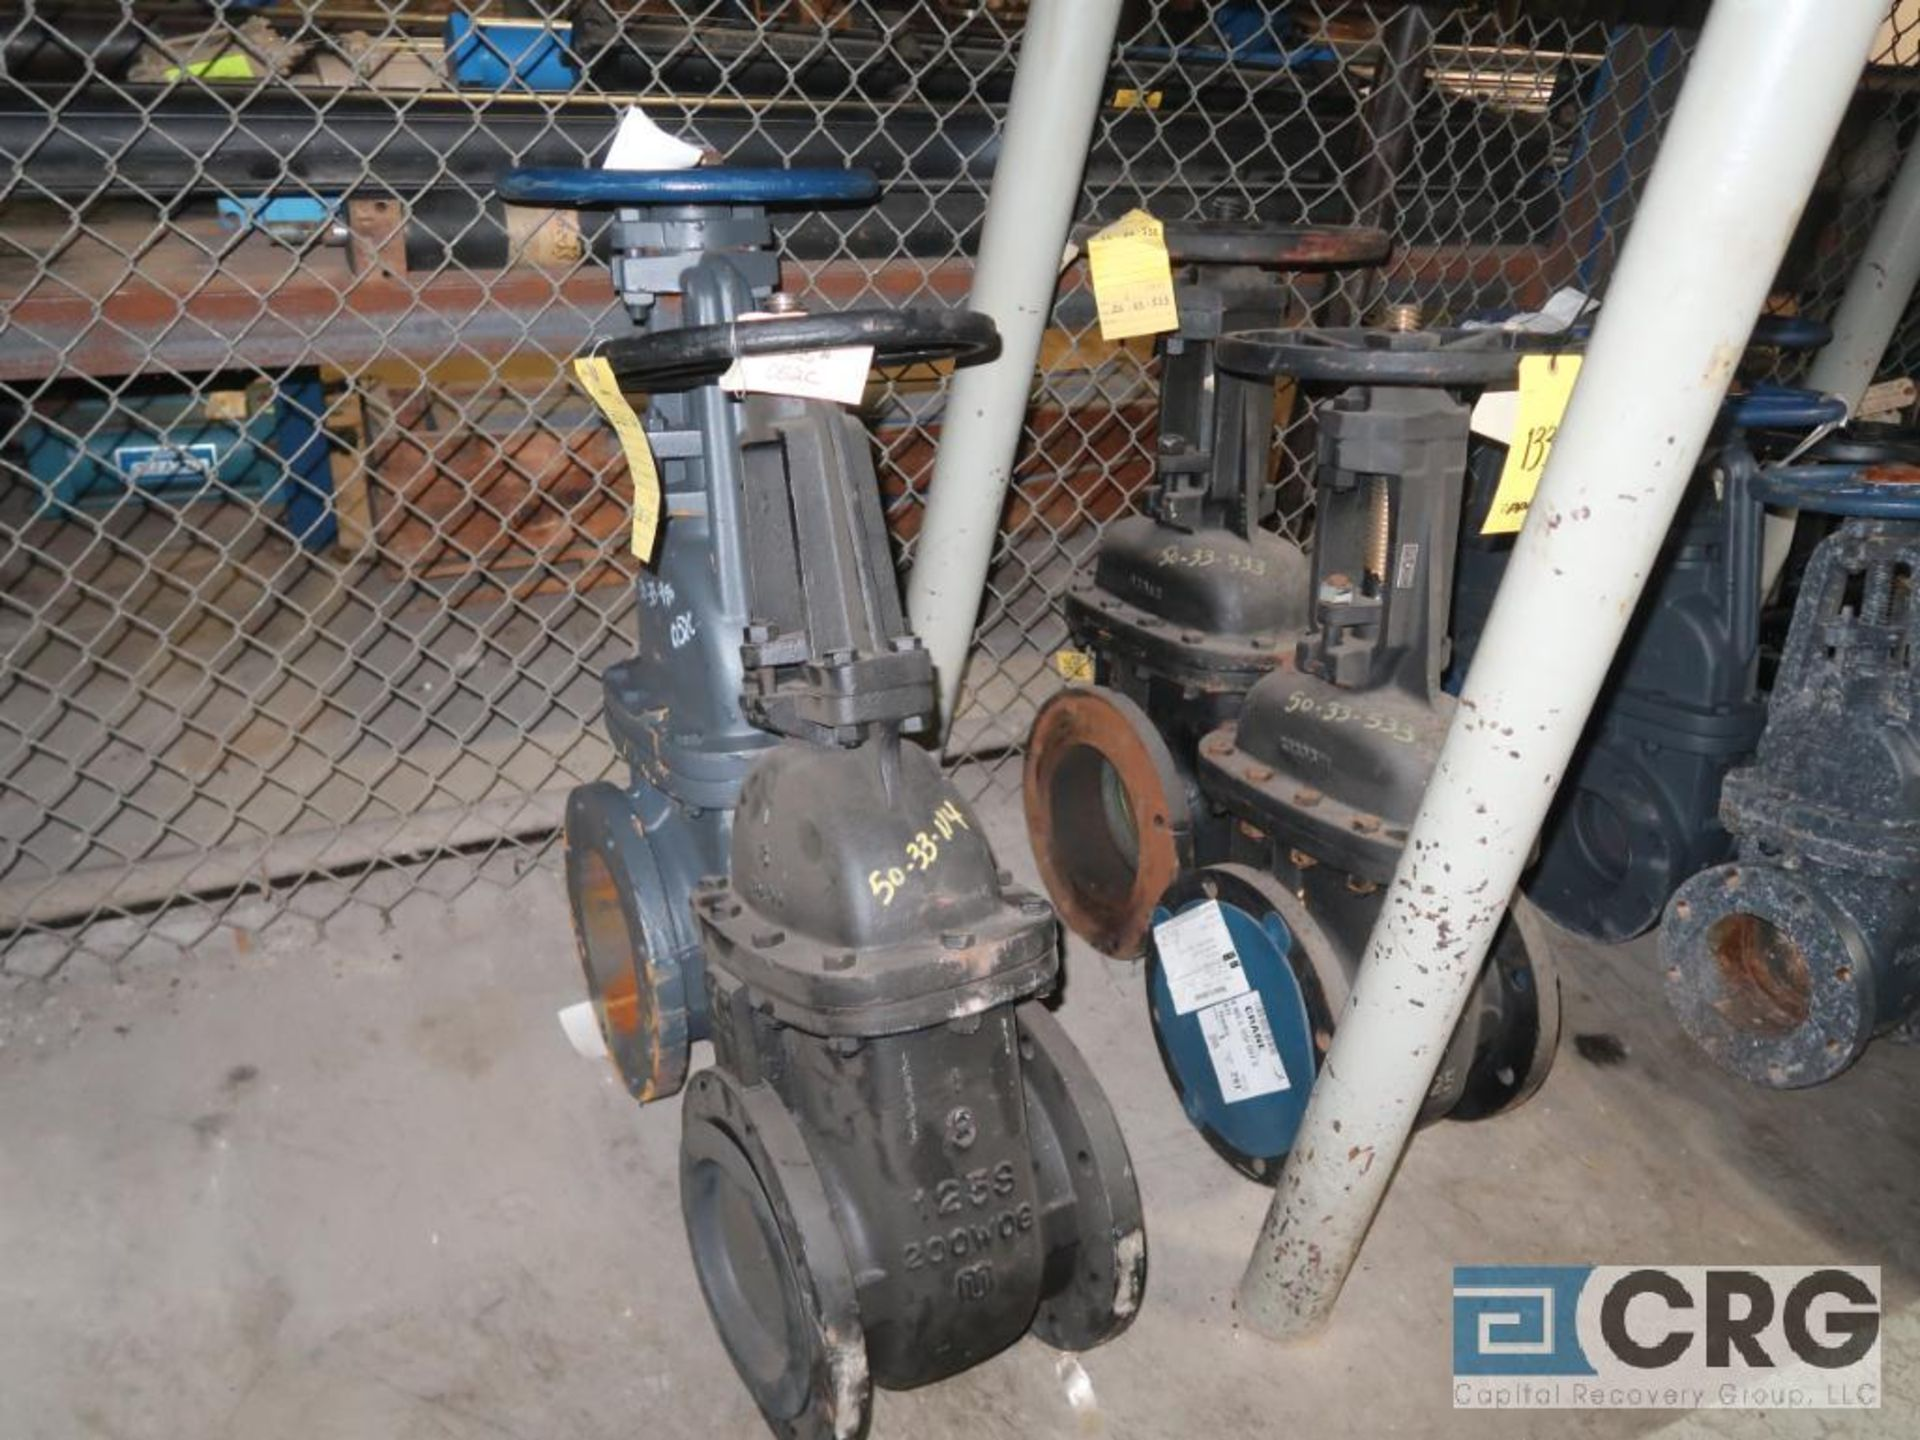 Lot of (7) ball valves, (4) 8 in., (1) 12 in., and (2) 6 in. (Store Basement) - Image 2 of 3